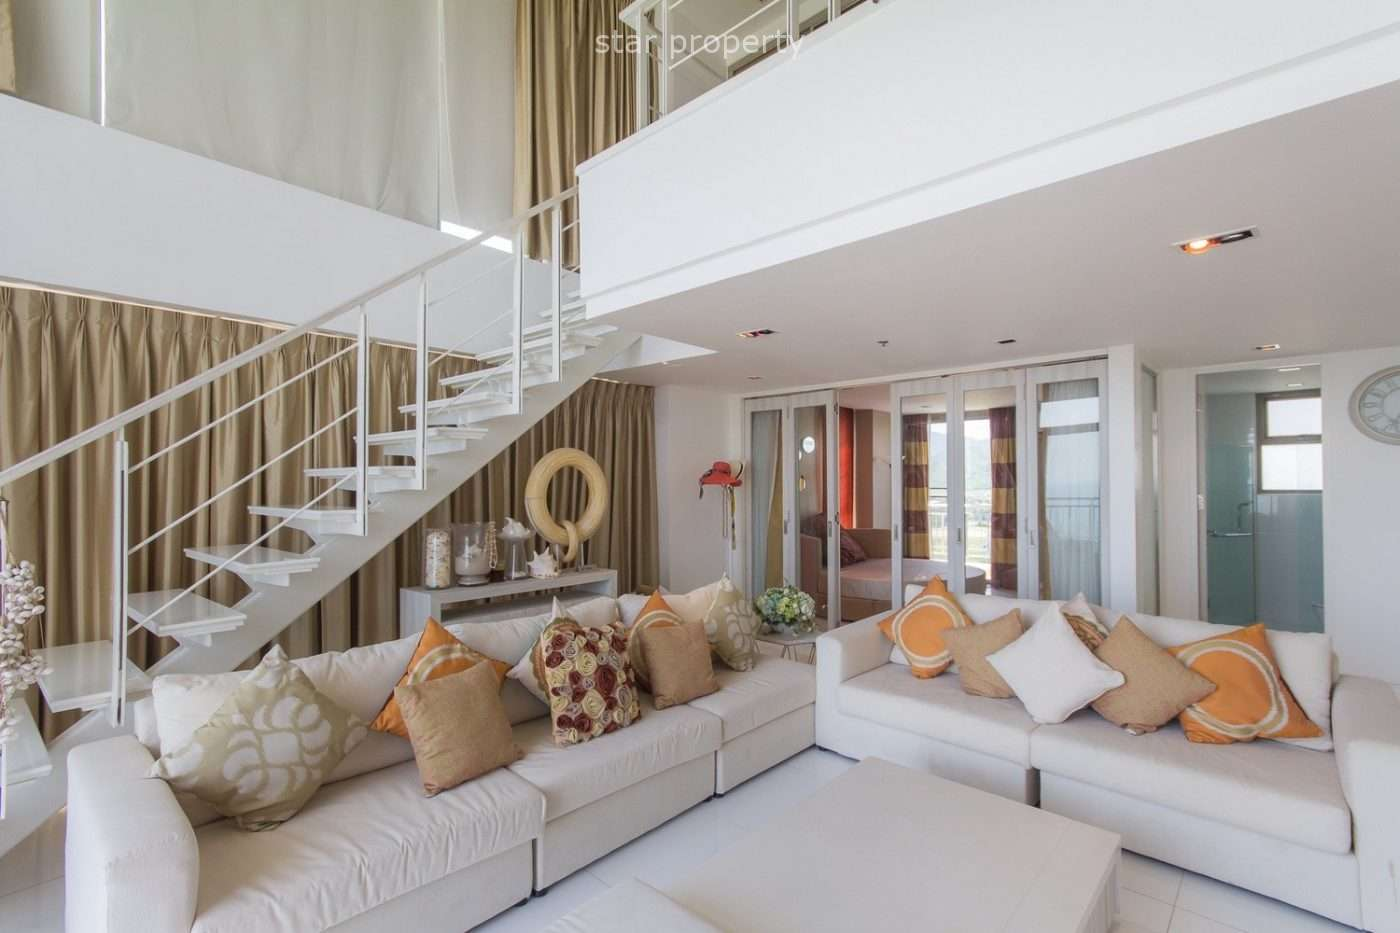 Luxury 3 beds penthouse on the corner condo near Hua Hin for sale at Boat House